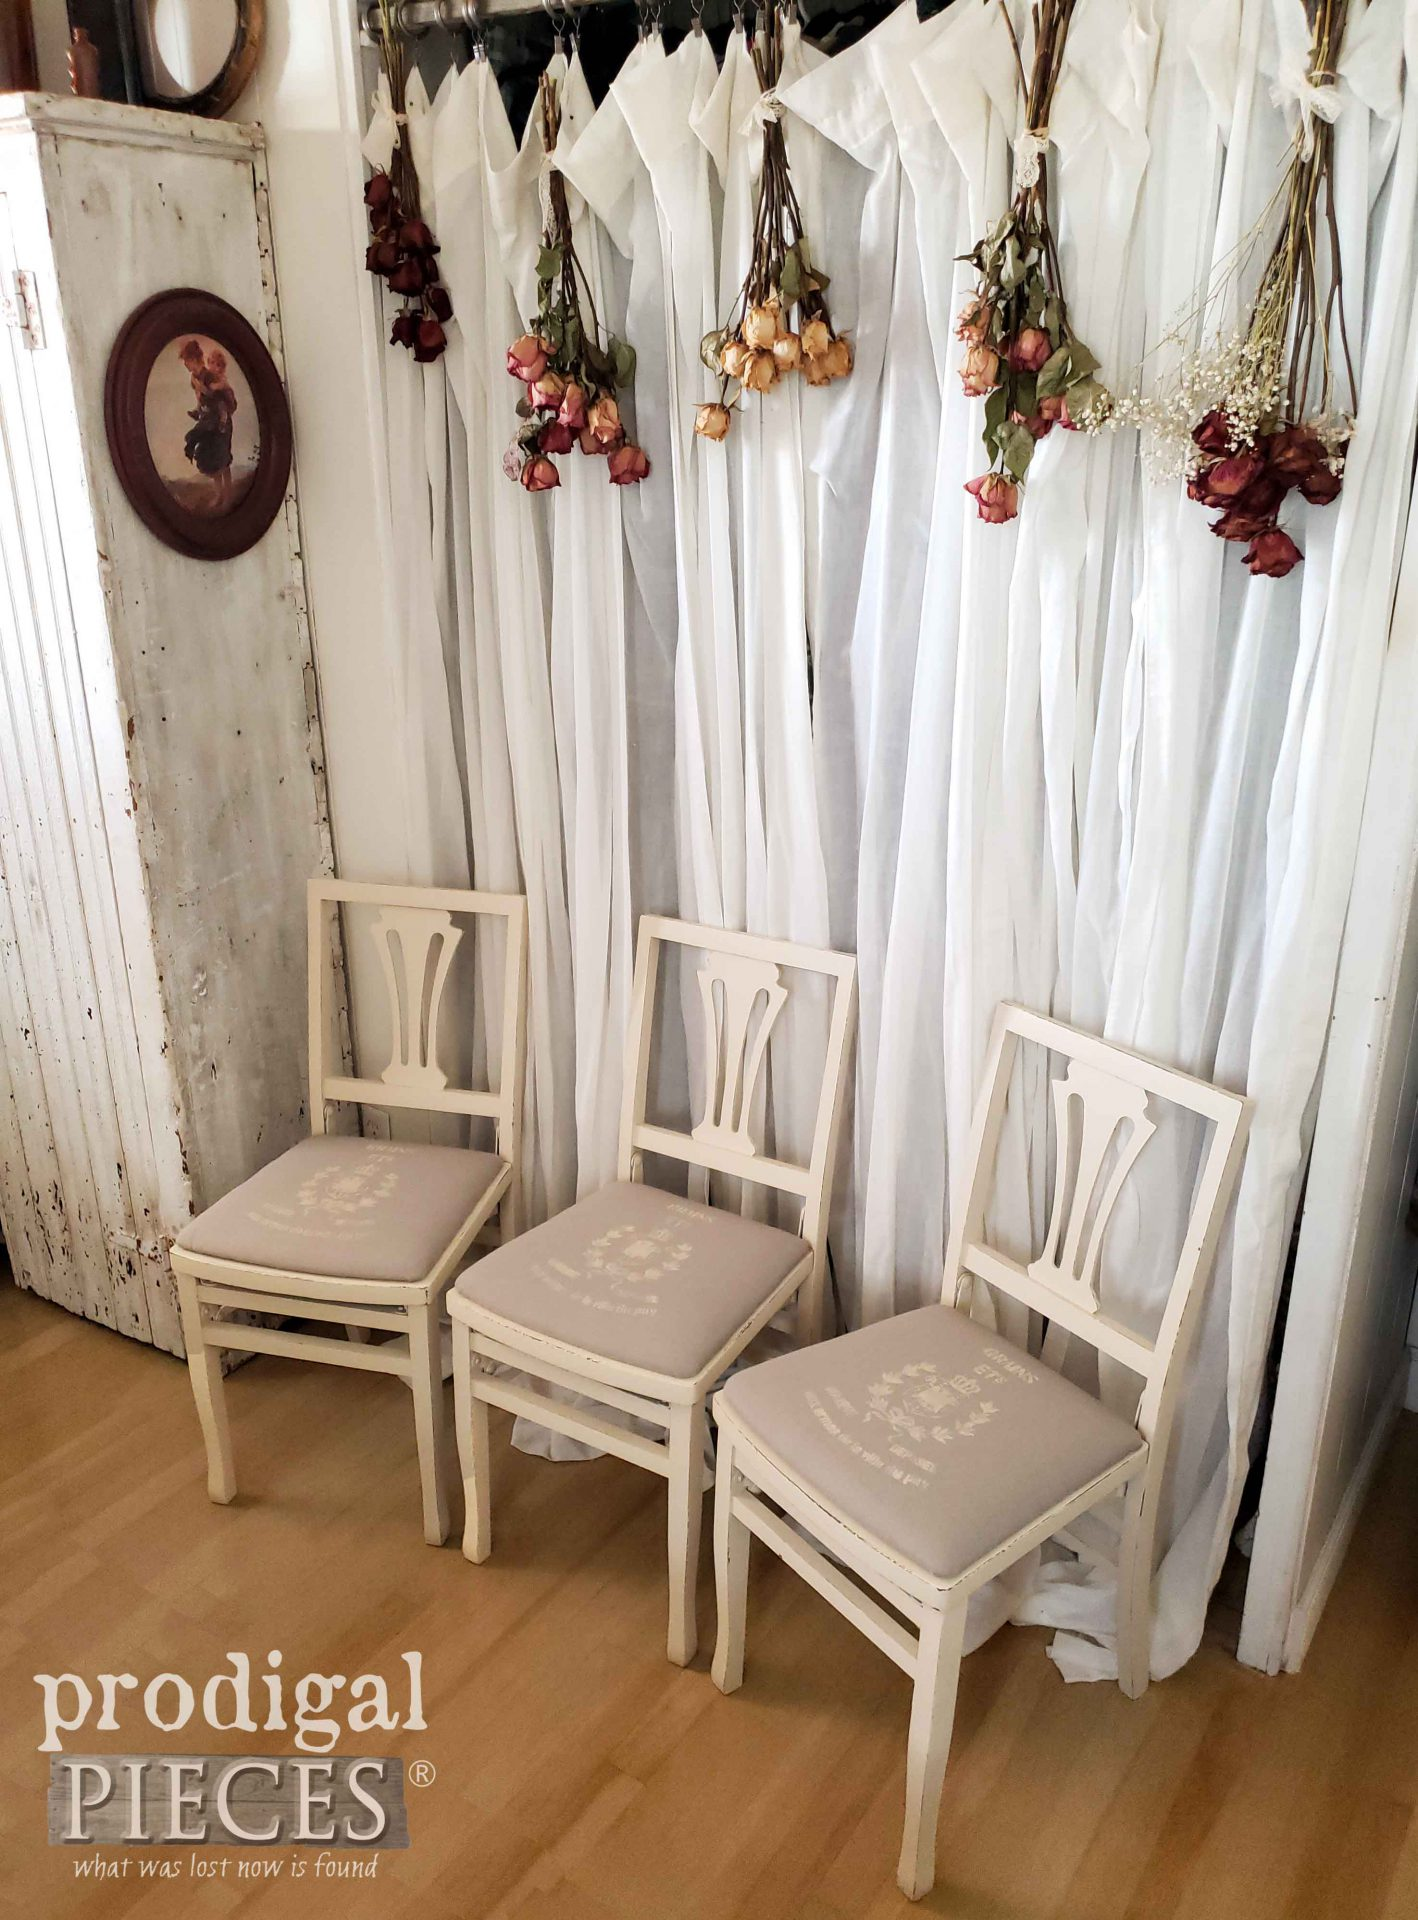 Set of 3 Grain Sack Folding Chairs by Prodigal Pieces | prodigalpieces.com #prodigalpieces #diy #home #furniture #homedecor #farmhouse #vintage